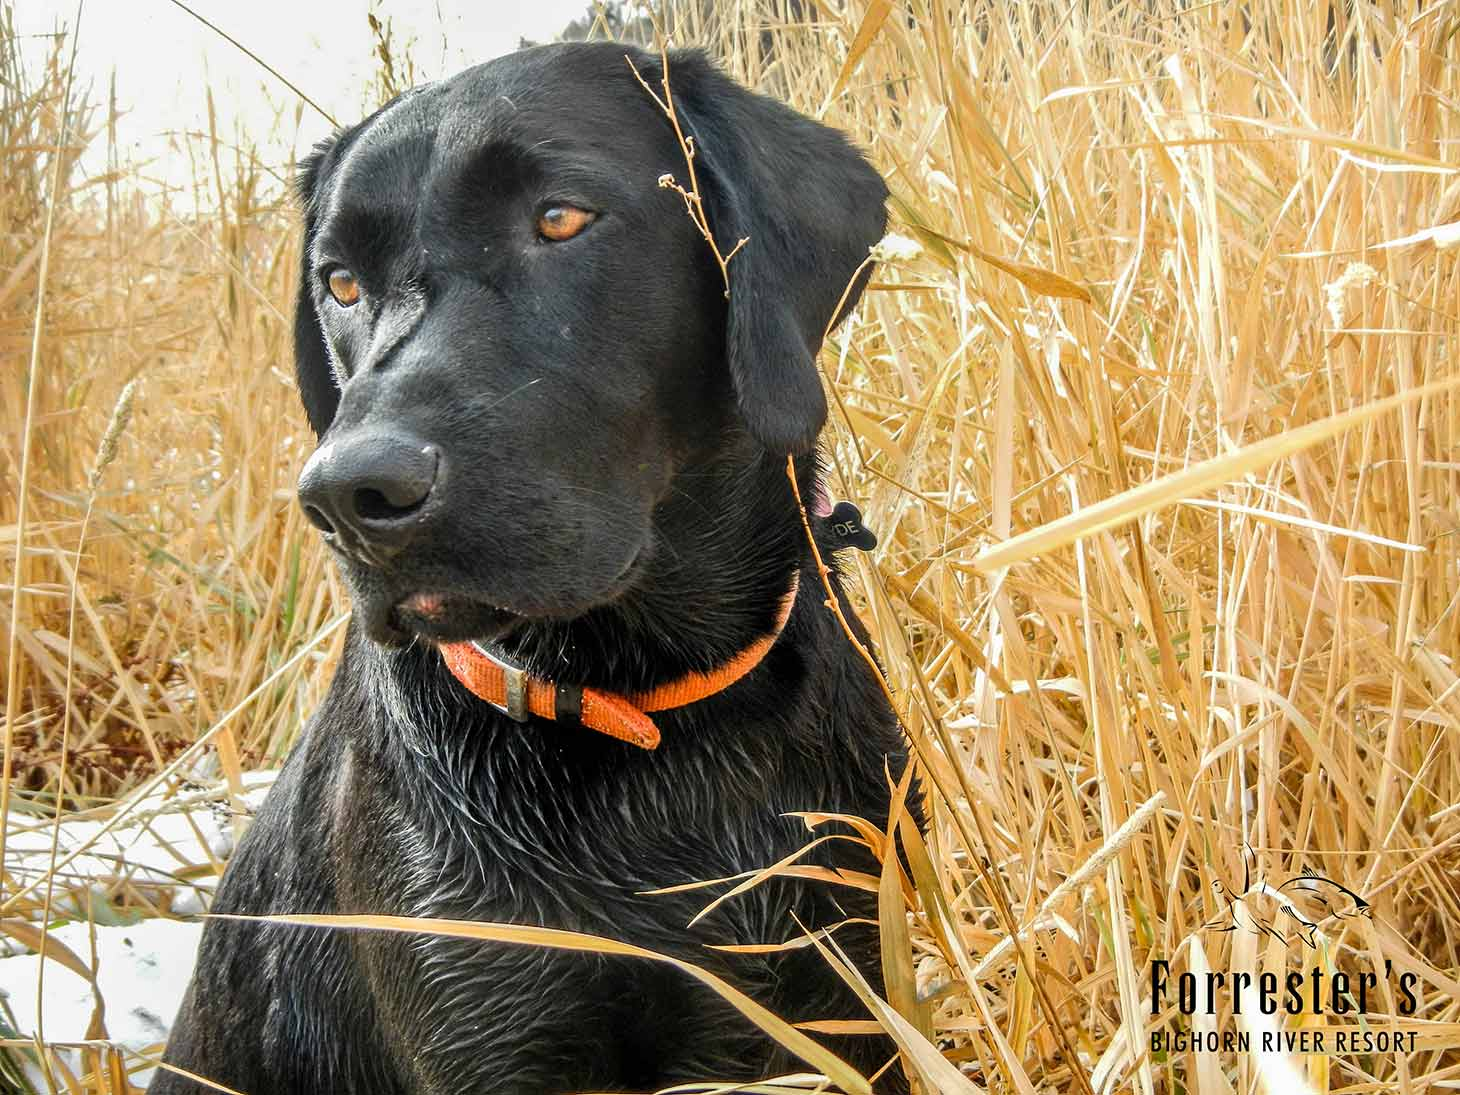 waterfowl hunting, Big Horn River, Duck dogs, black labs, Forrester's Bighorn River Resort, duck hunting